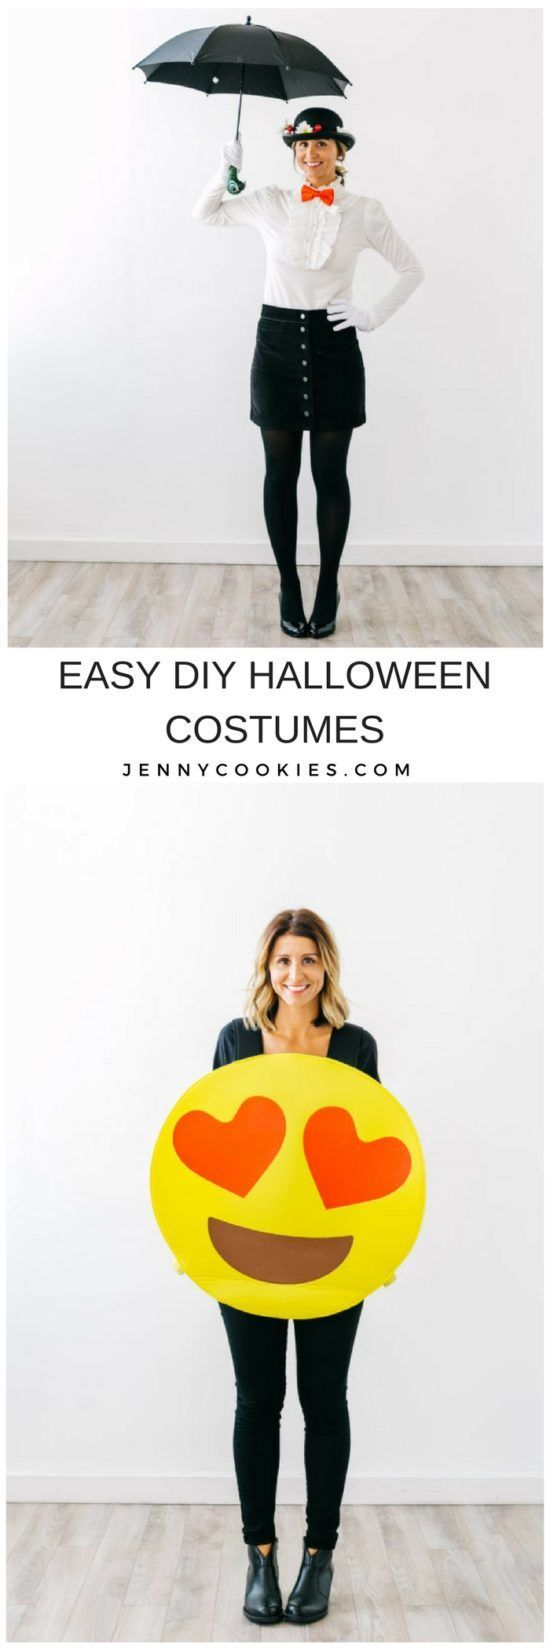 Easy Halloween Costume Ideas | adult halloween costume ideas | DIY ...